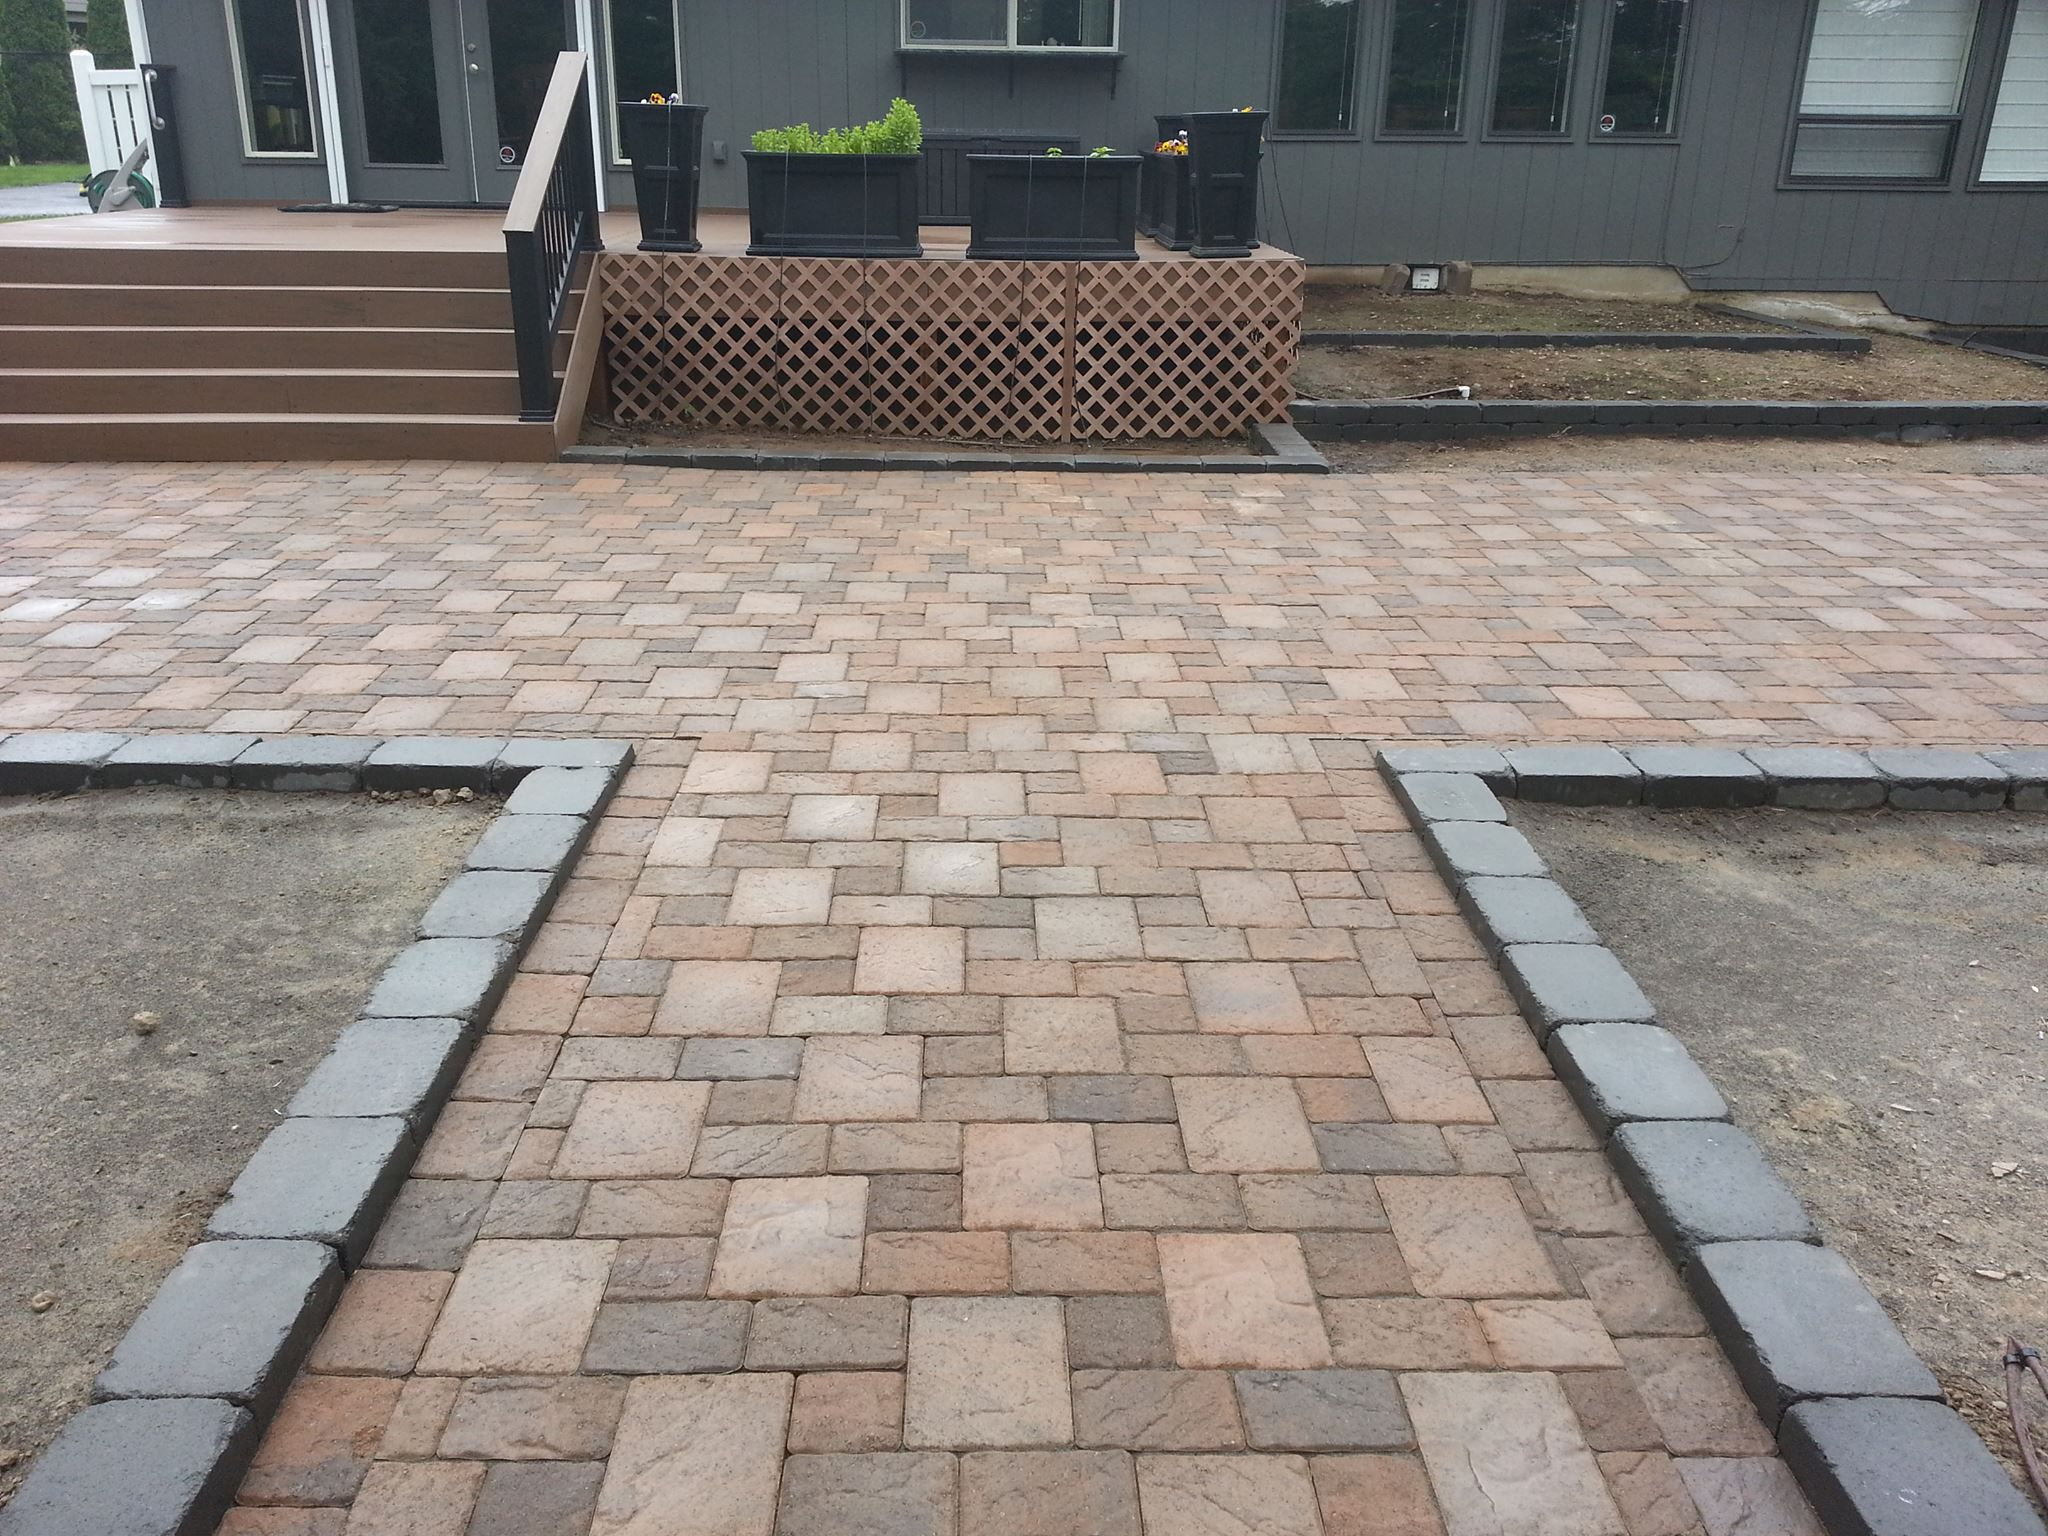 Textured Pavers To Mimic Natural Stone Paver Patios